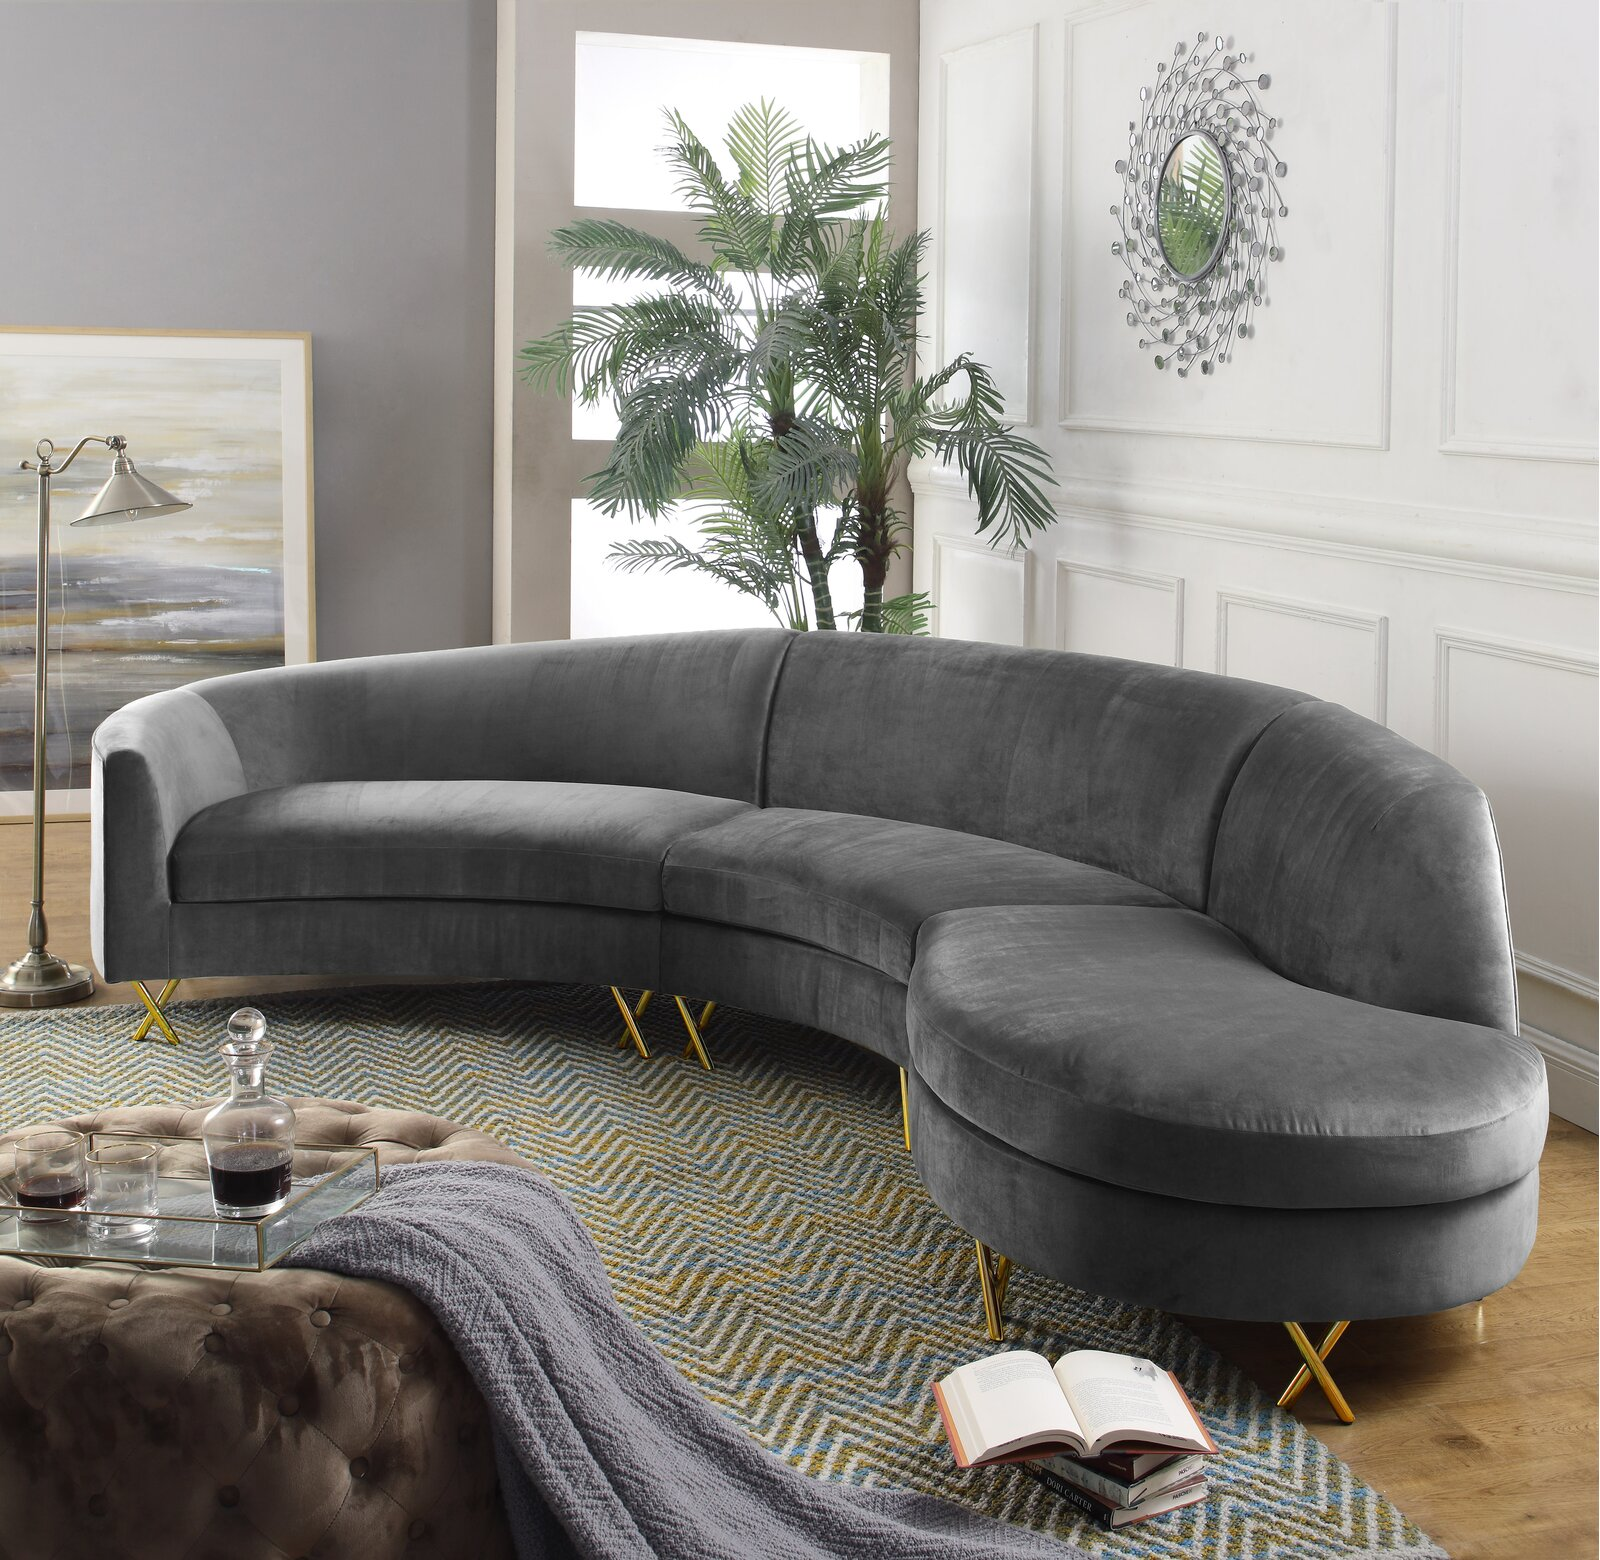 best 2021 sectional couches trends - The Hottest Home Decor Trends of 2021